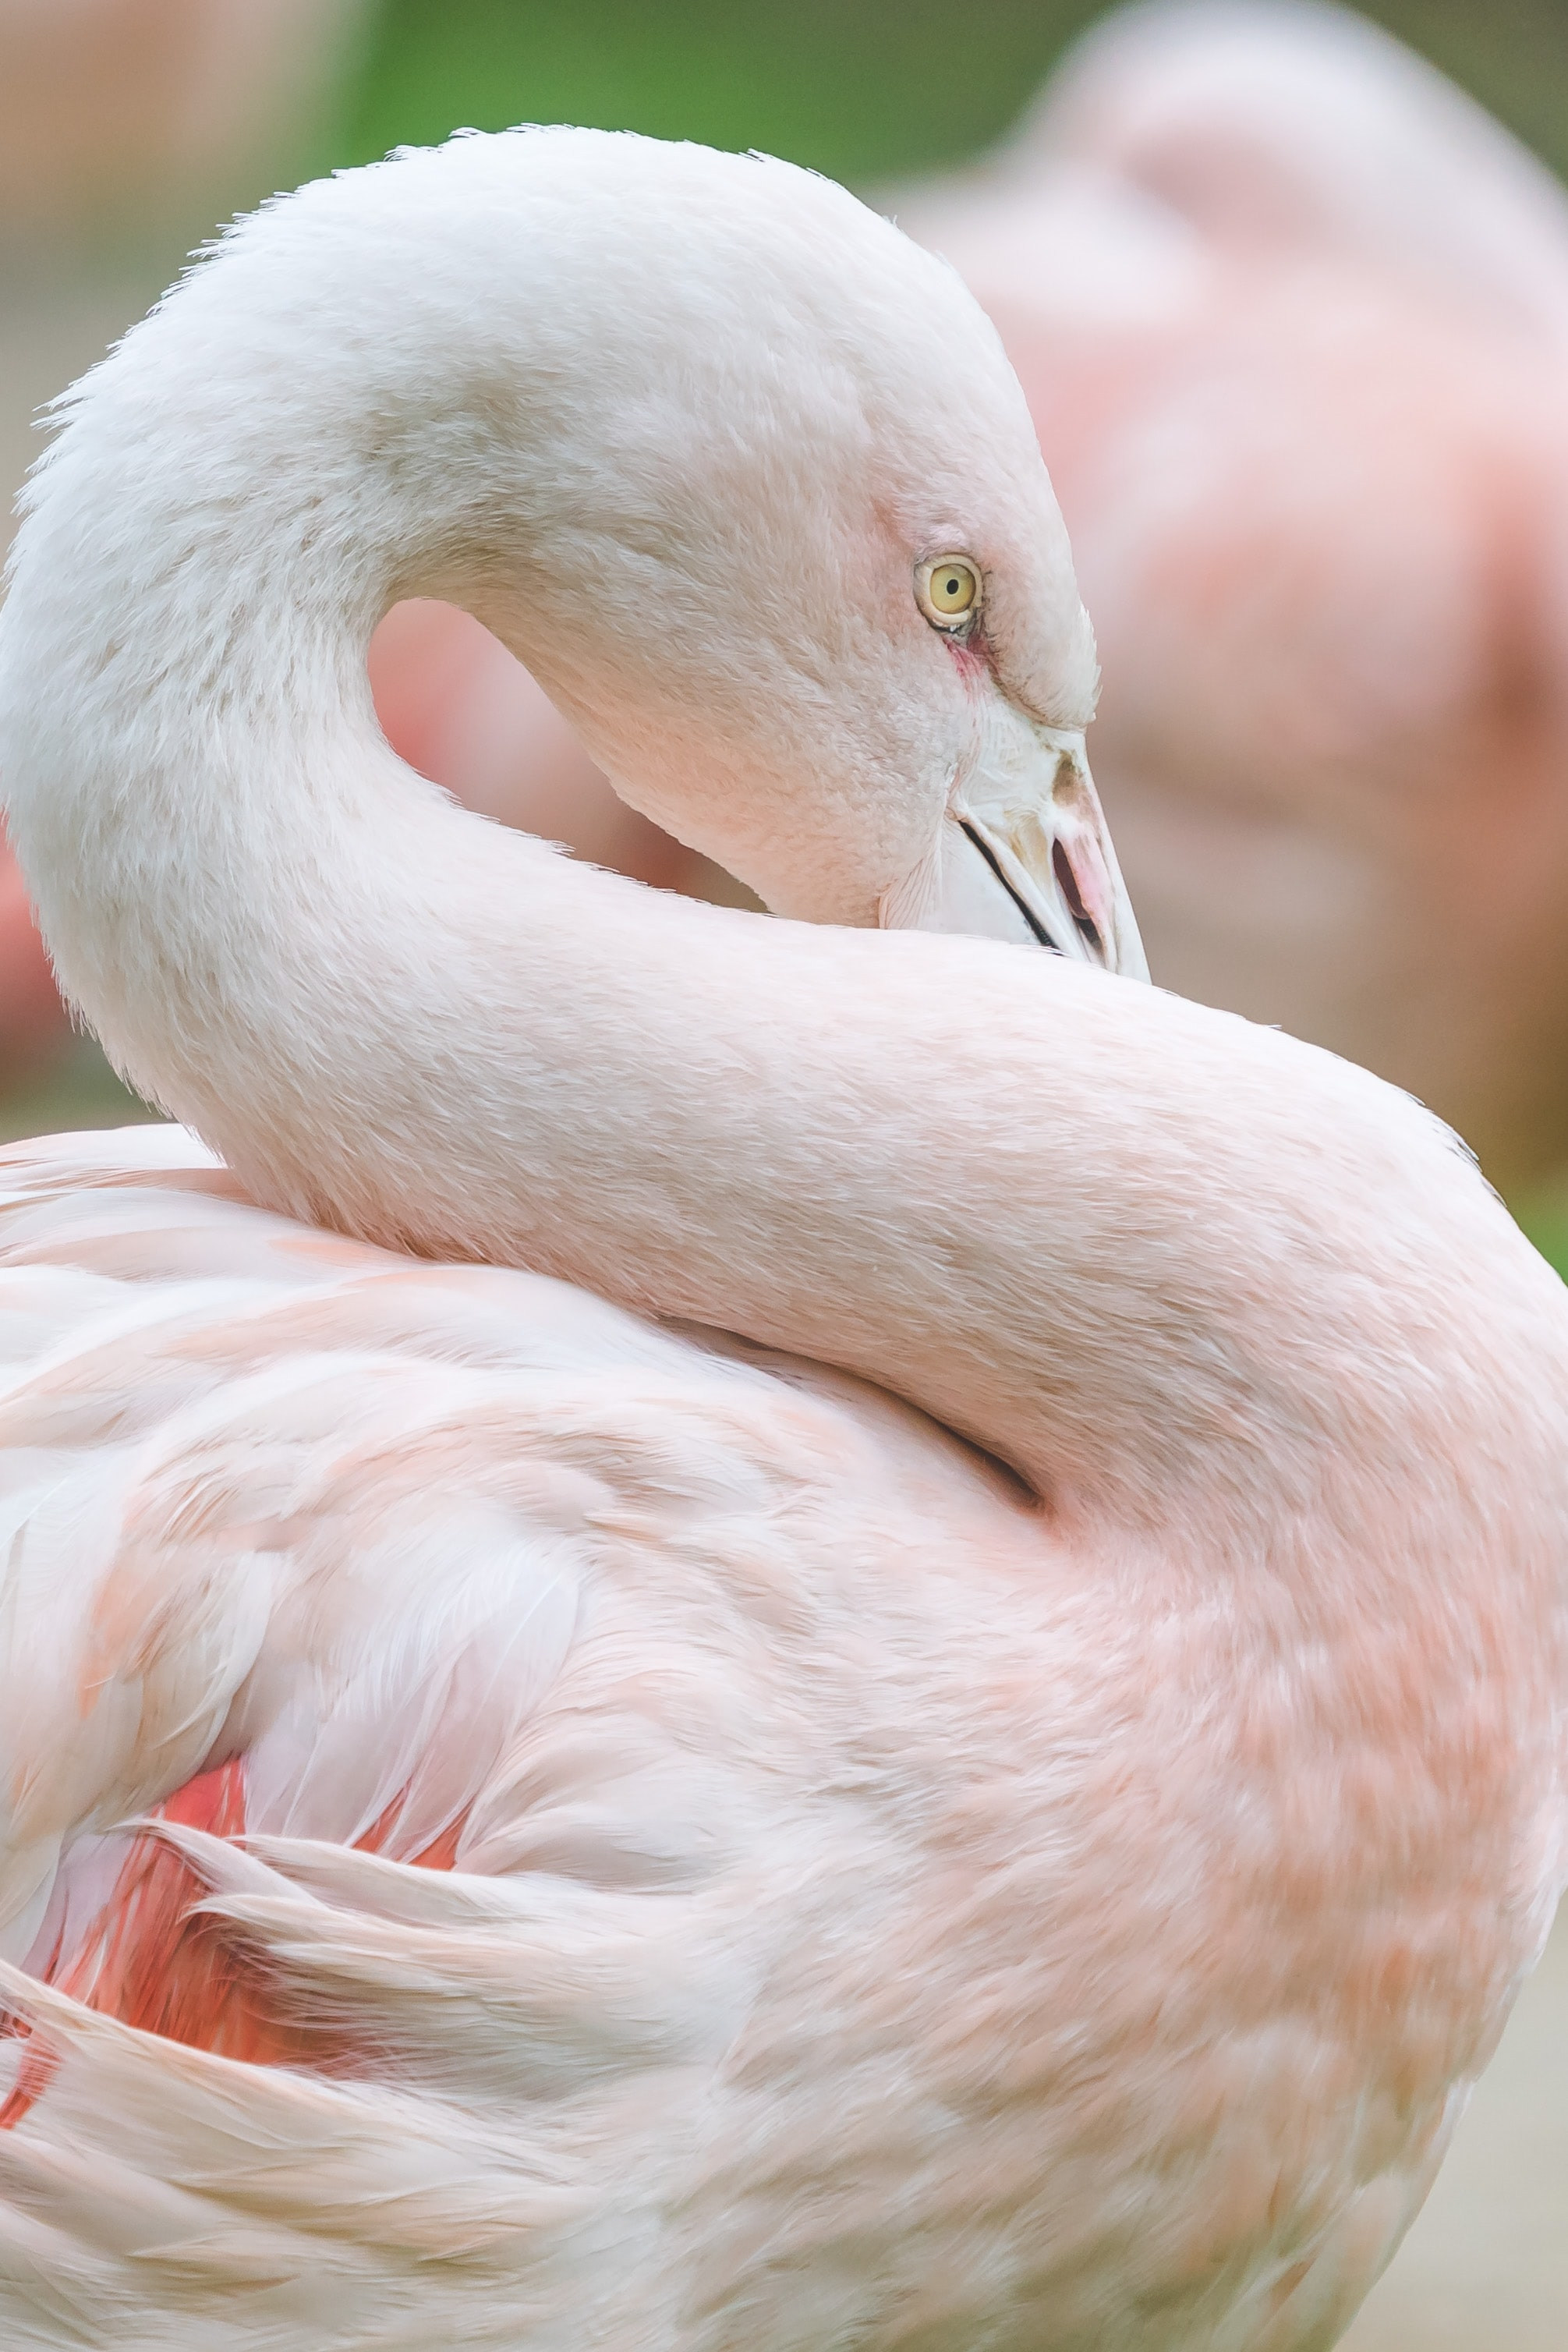 pink flamingo in shallow focus photography